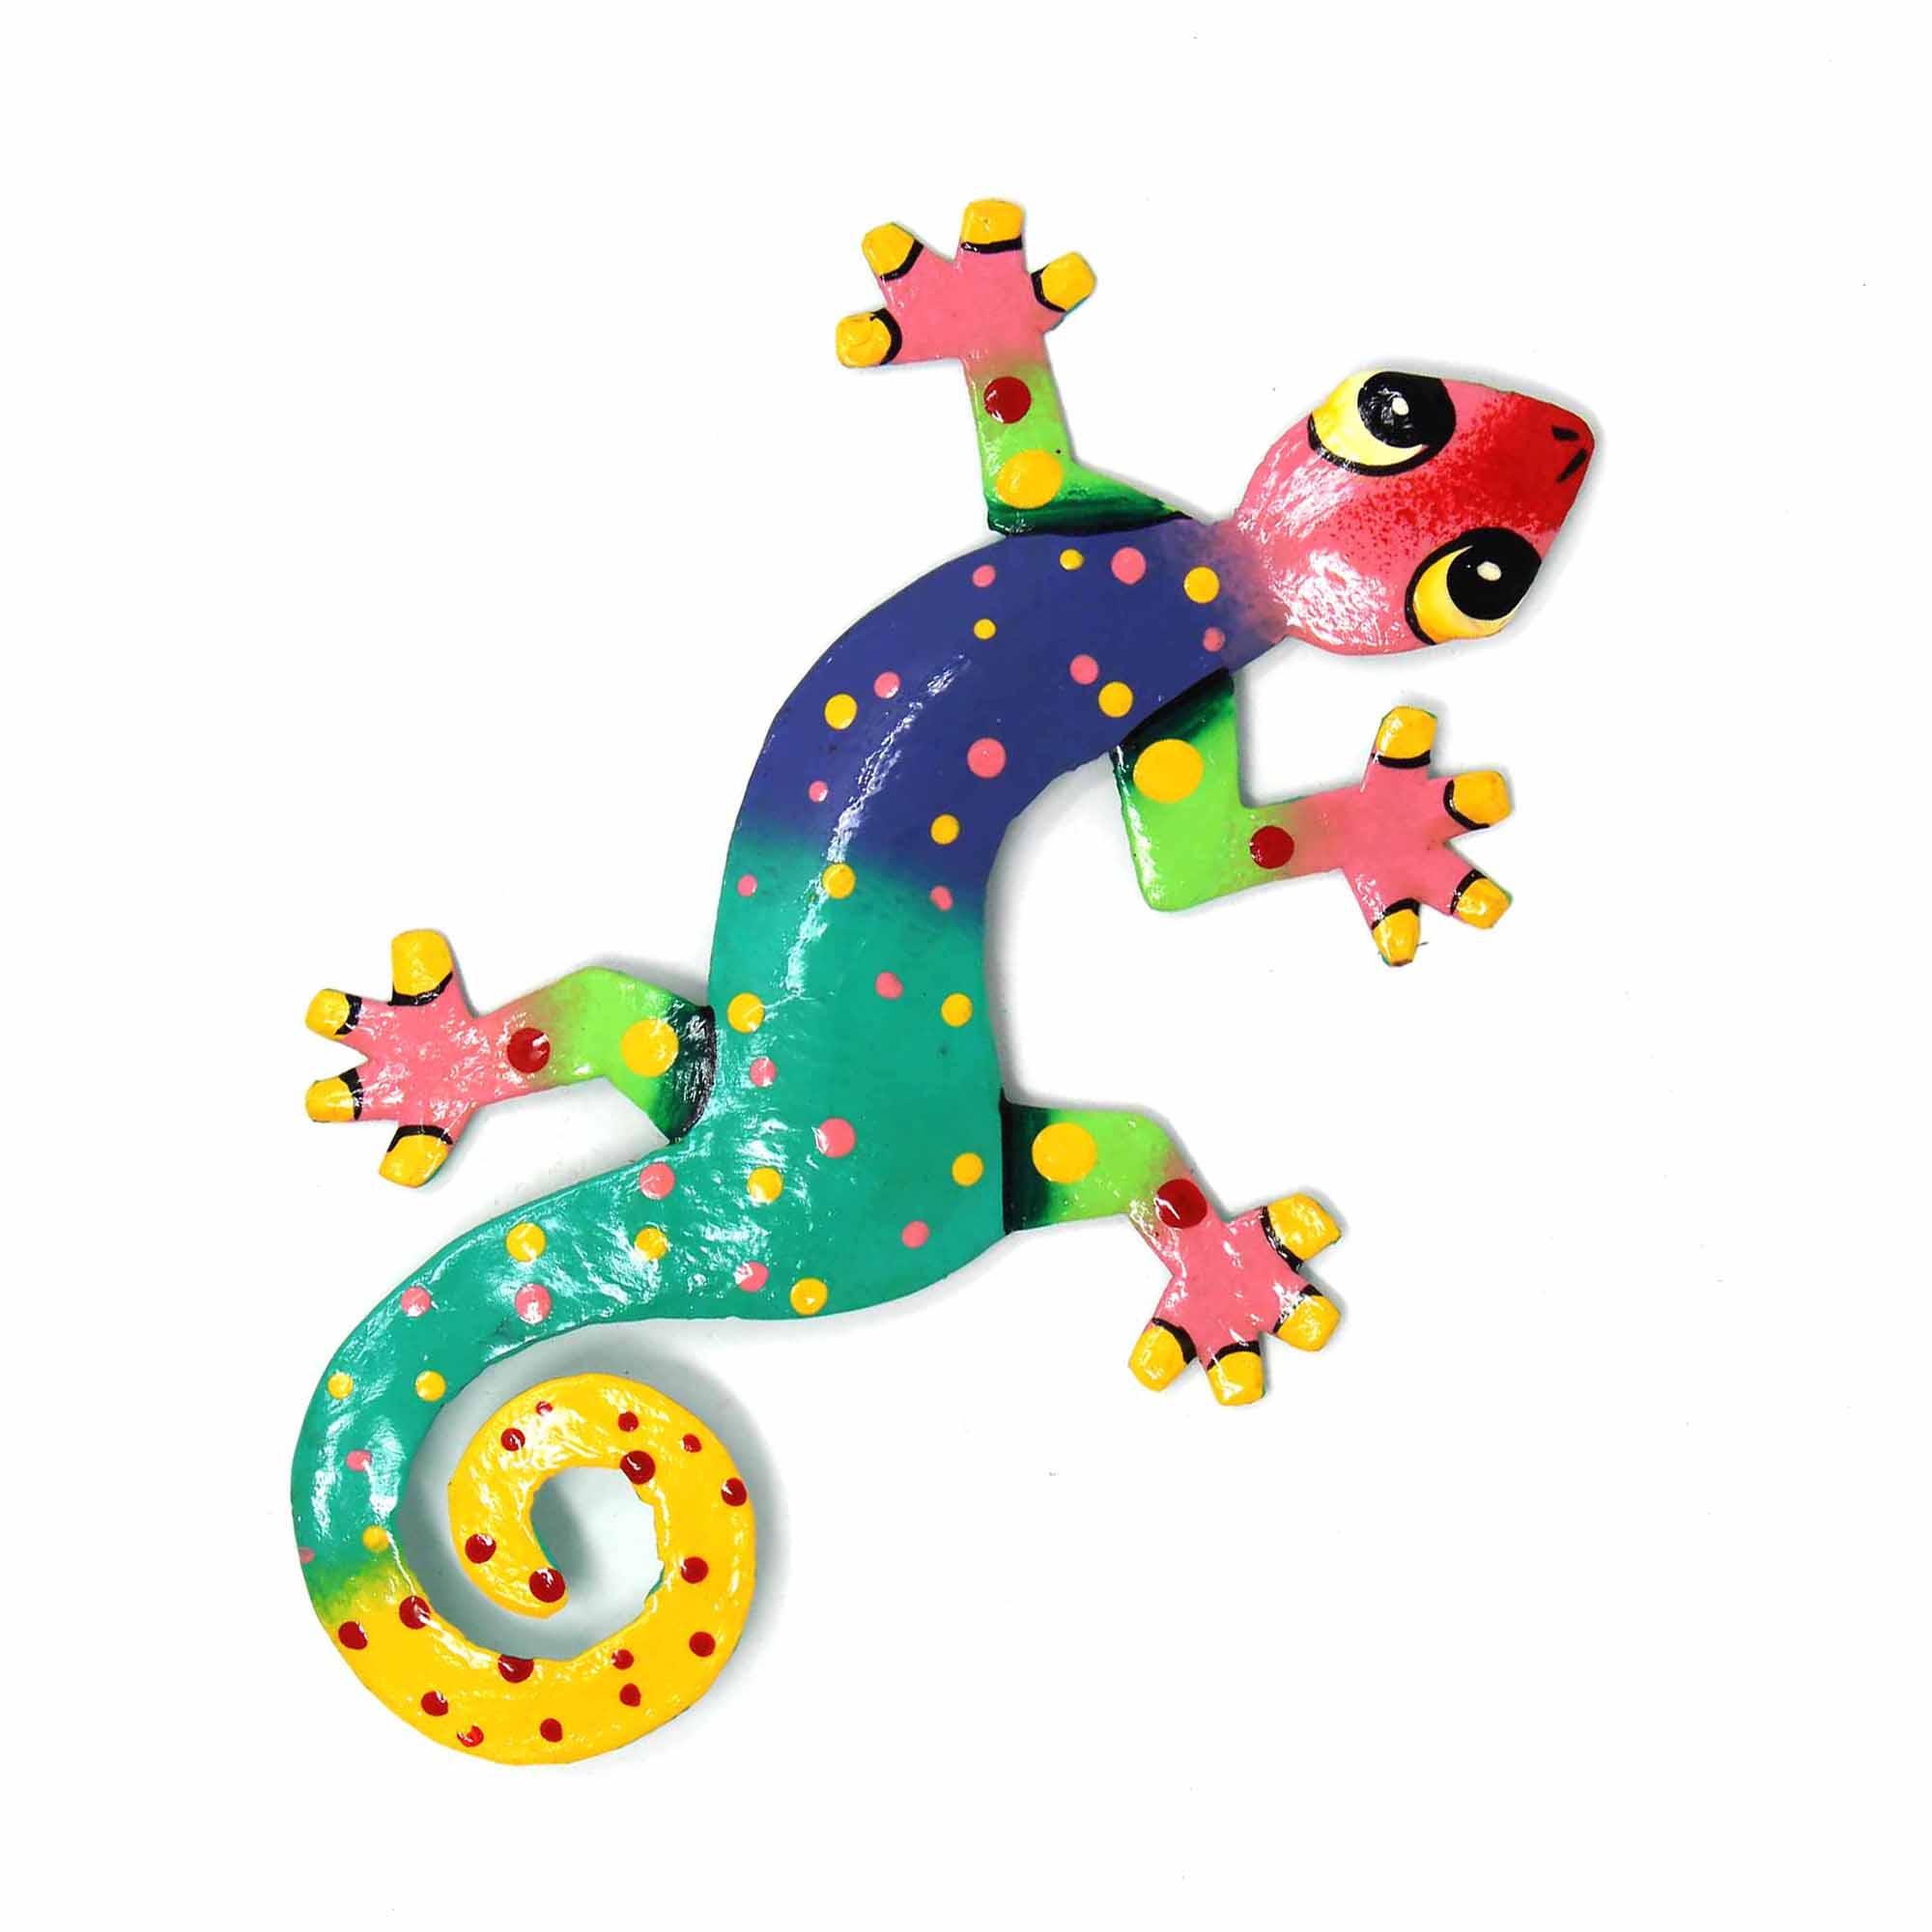 Eight inch Painted Gecko Recycled Haitian Metal Wall Art Blue-Greens Blue Green with Pink Head